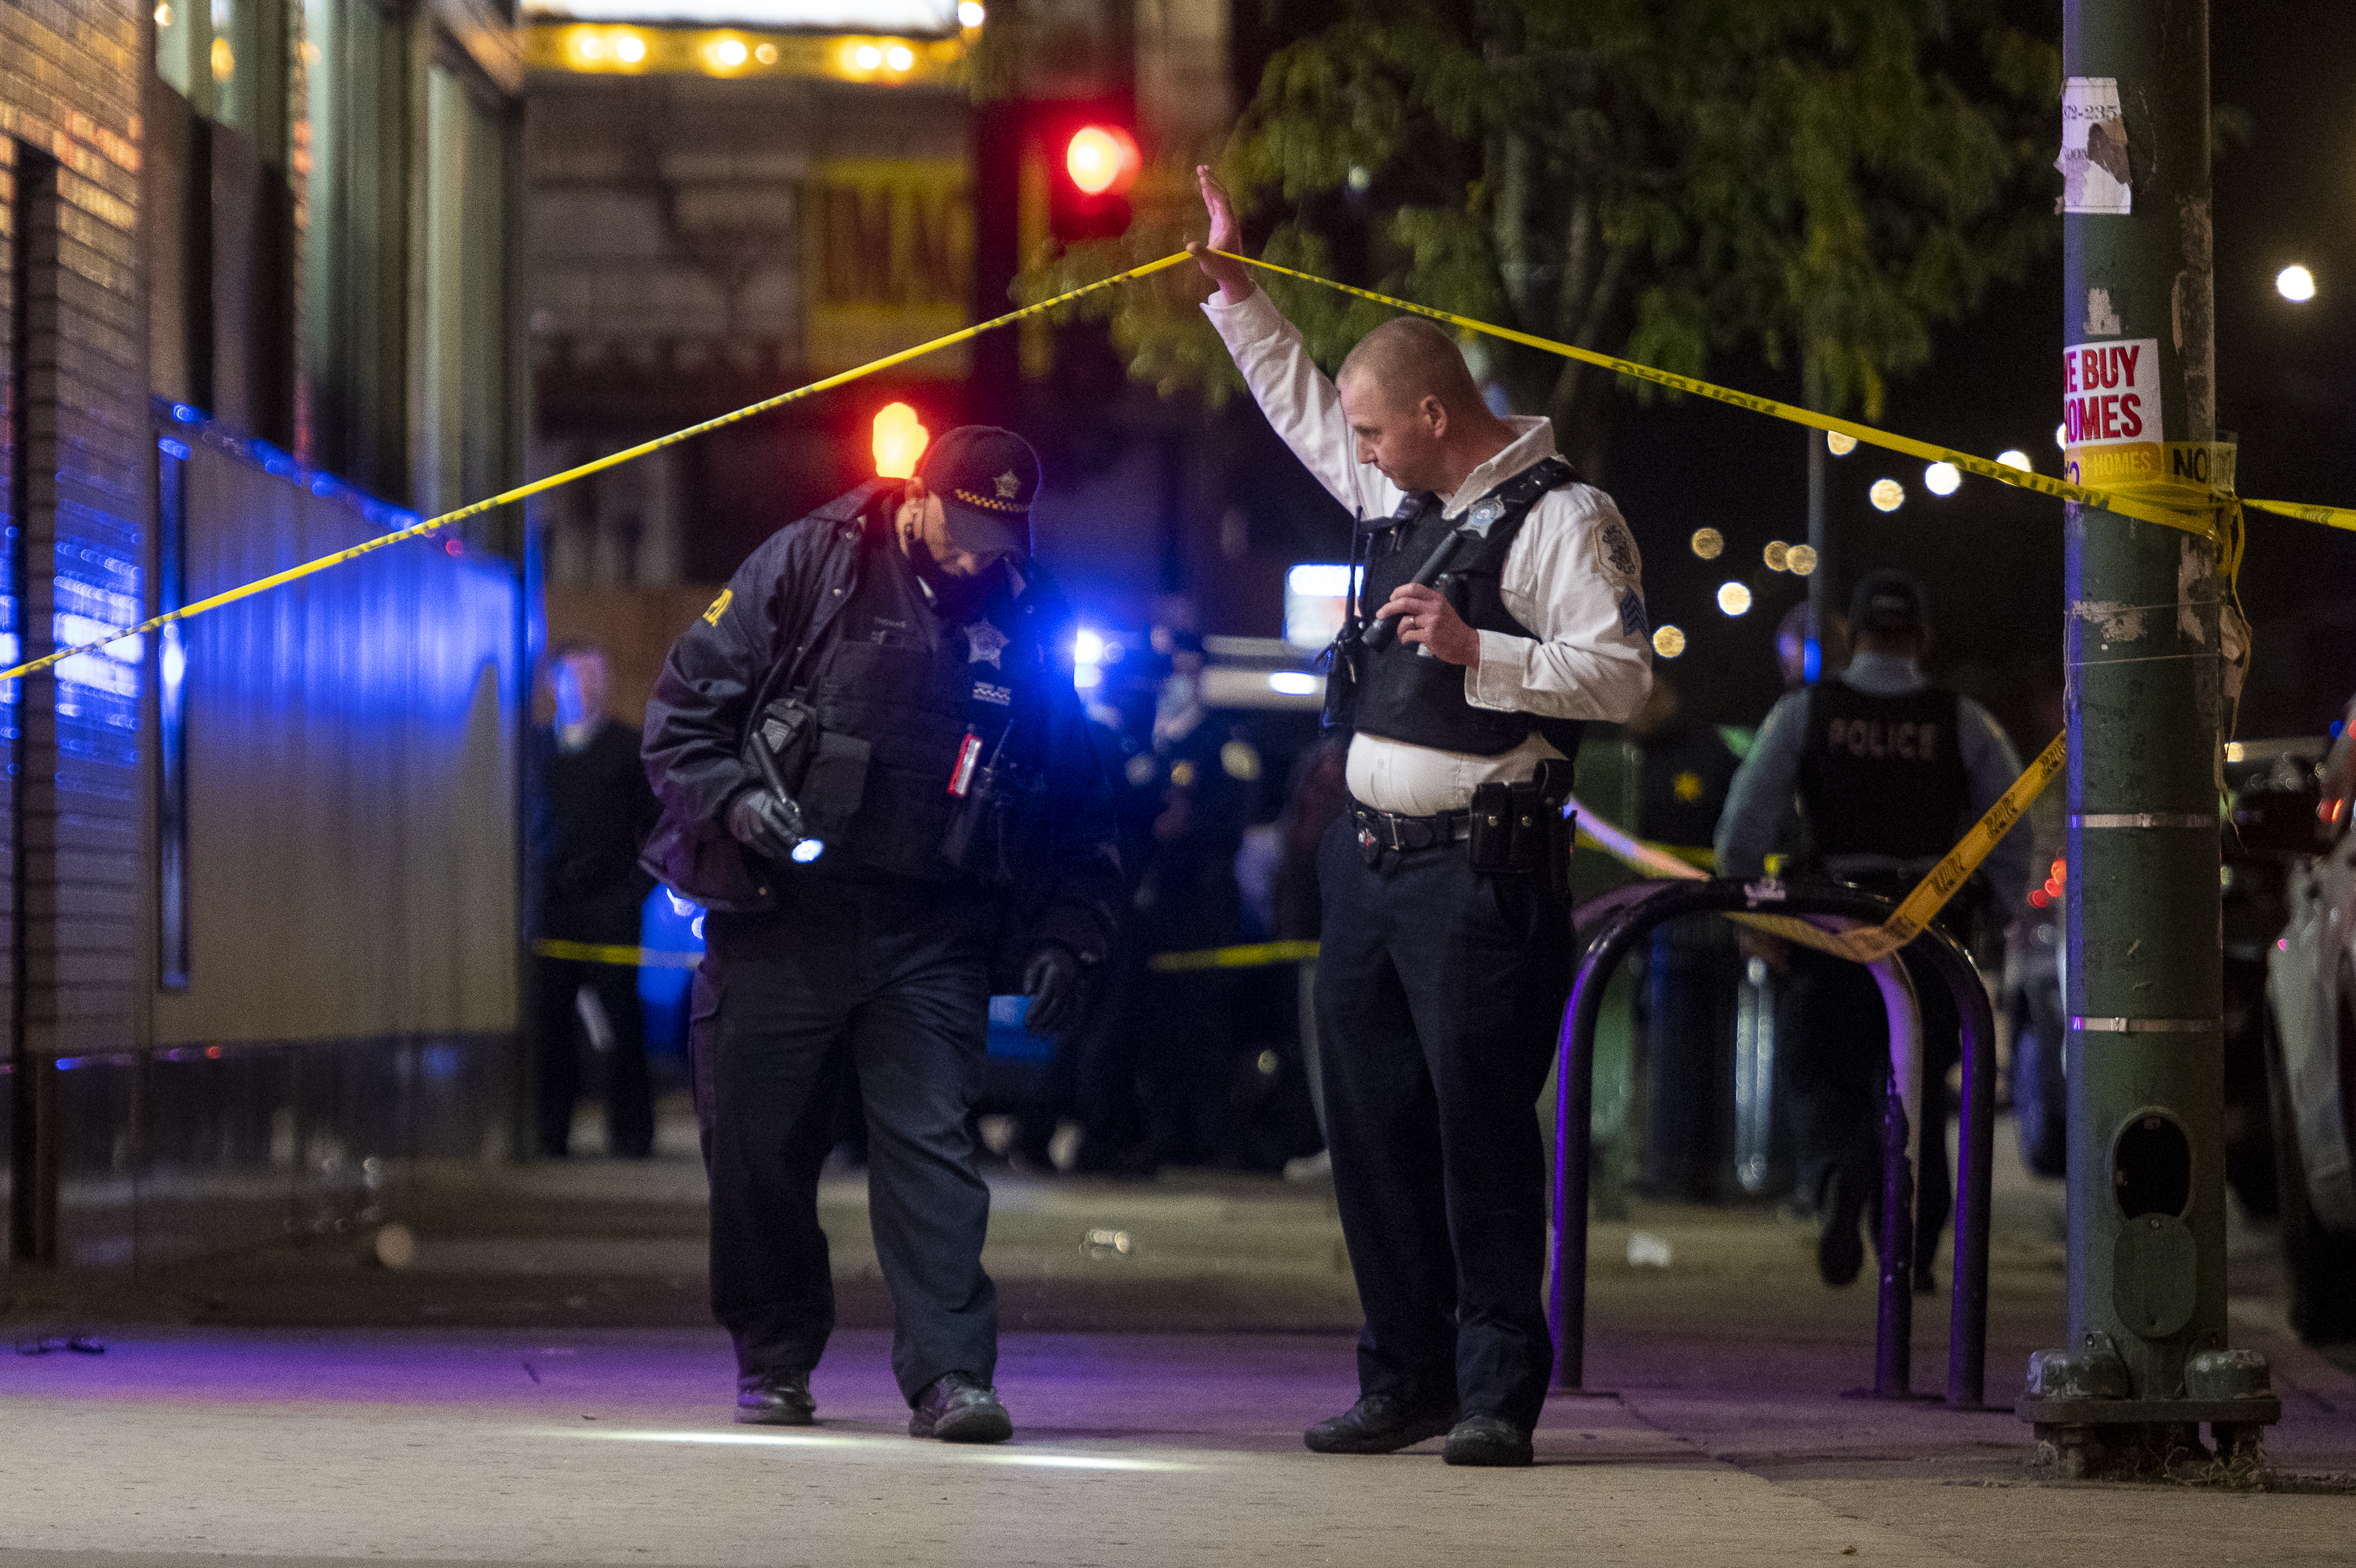 Chicago police work the scene where multiple people were shot in the 7900 block of South Cottage Grove Avenue, in the Chatham neighborhood, Friday, Oct. 22, 2021. | Tyler LaRiviere/Sun-Times